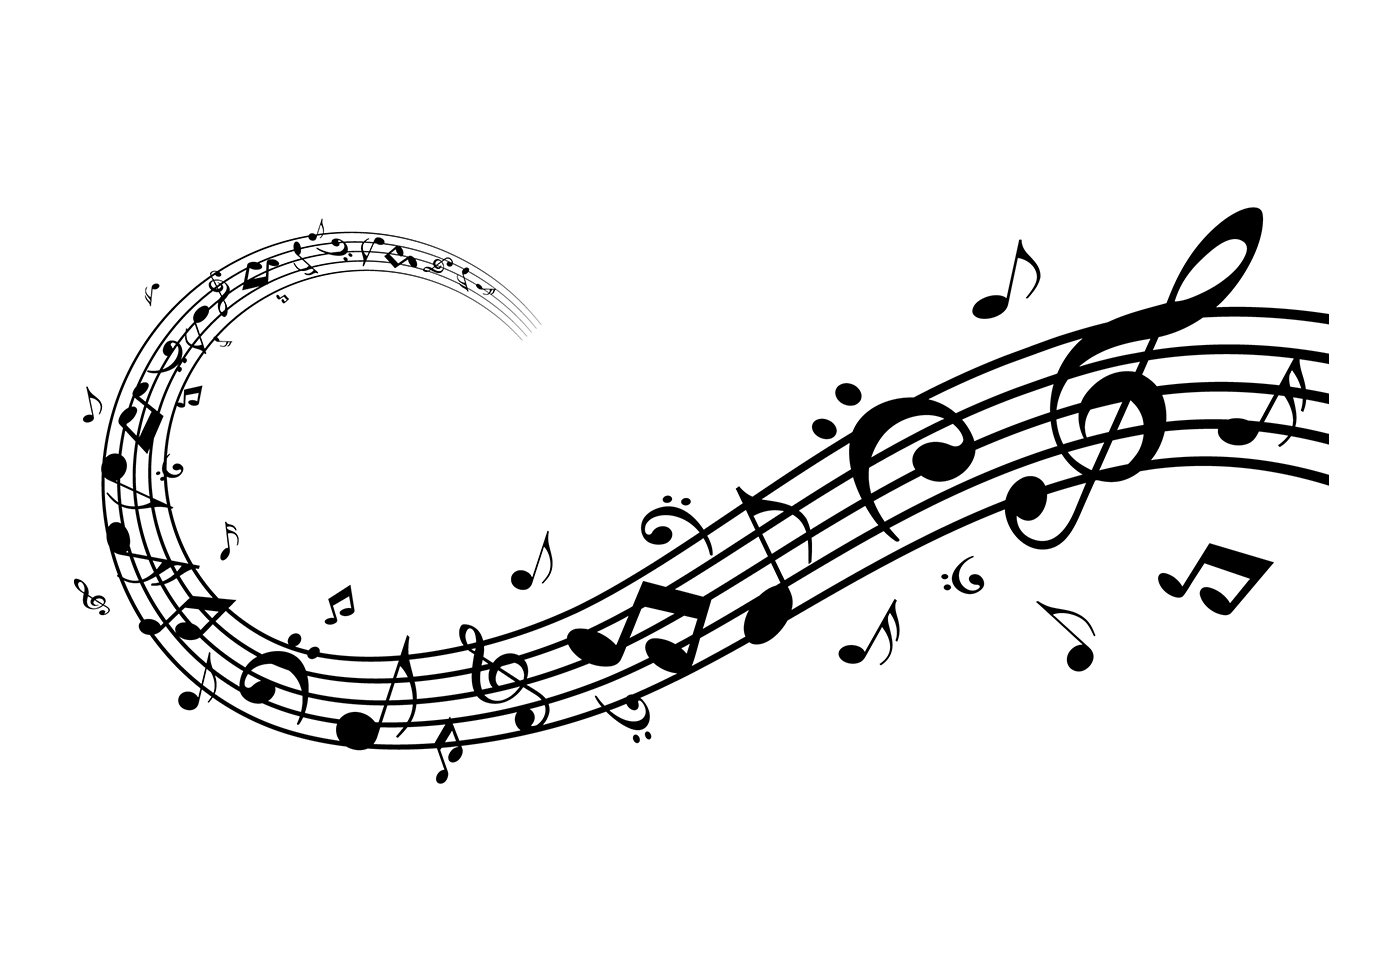 17 Musical Notes Vector Images